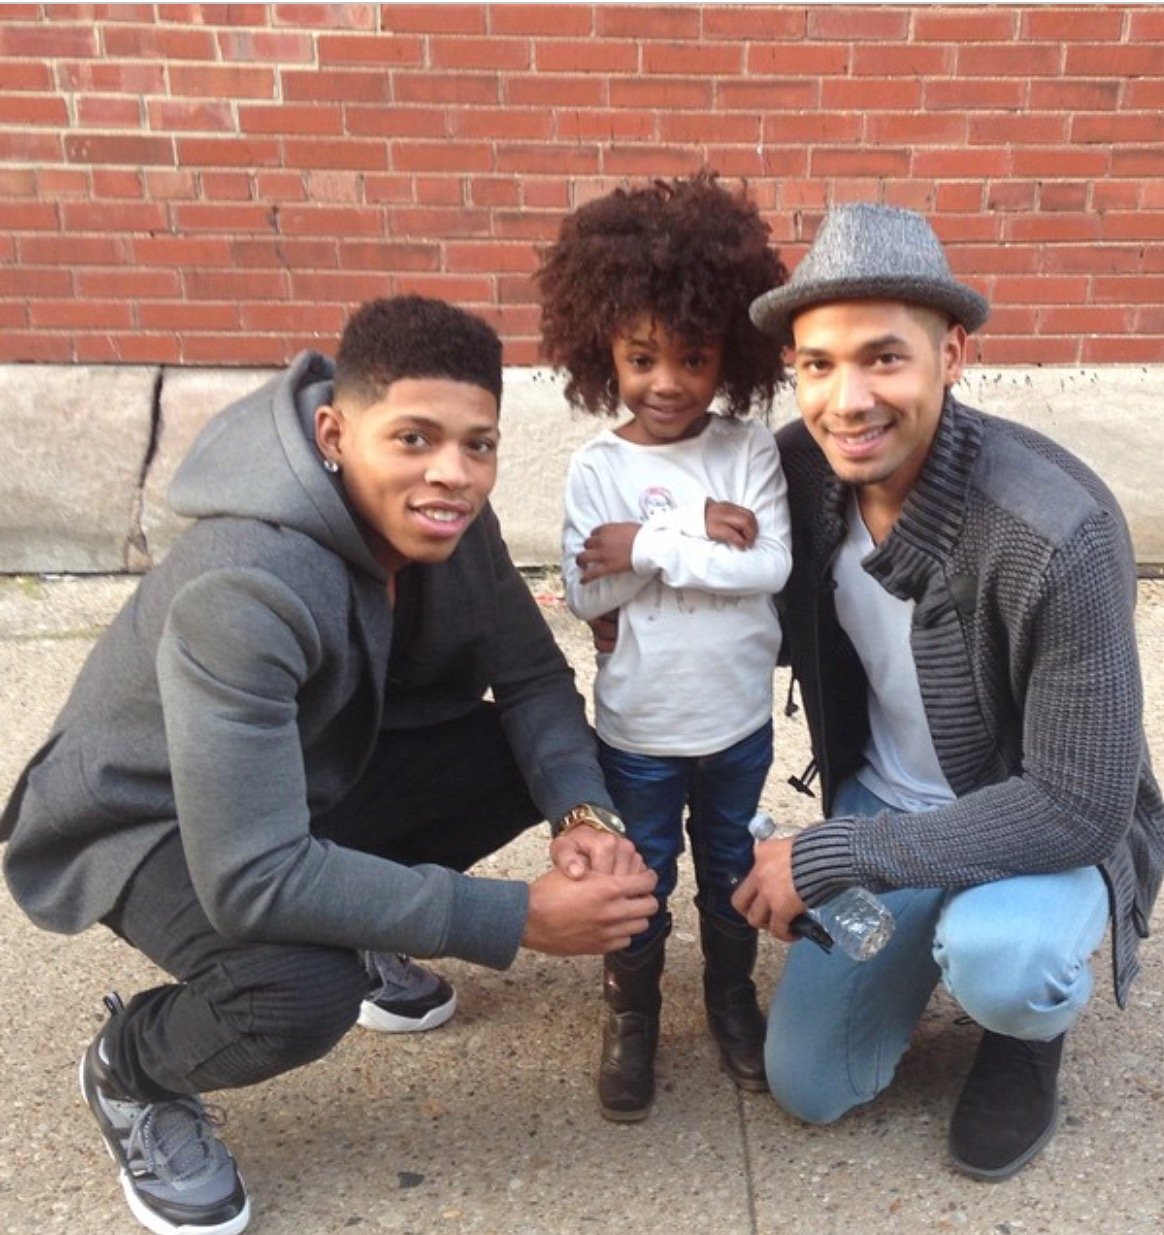 Leah Jeffries with actors Bryshere Y. Gray and Jussie Smollett who play Hakeem Lyon and Jamal Lyon on Empire.